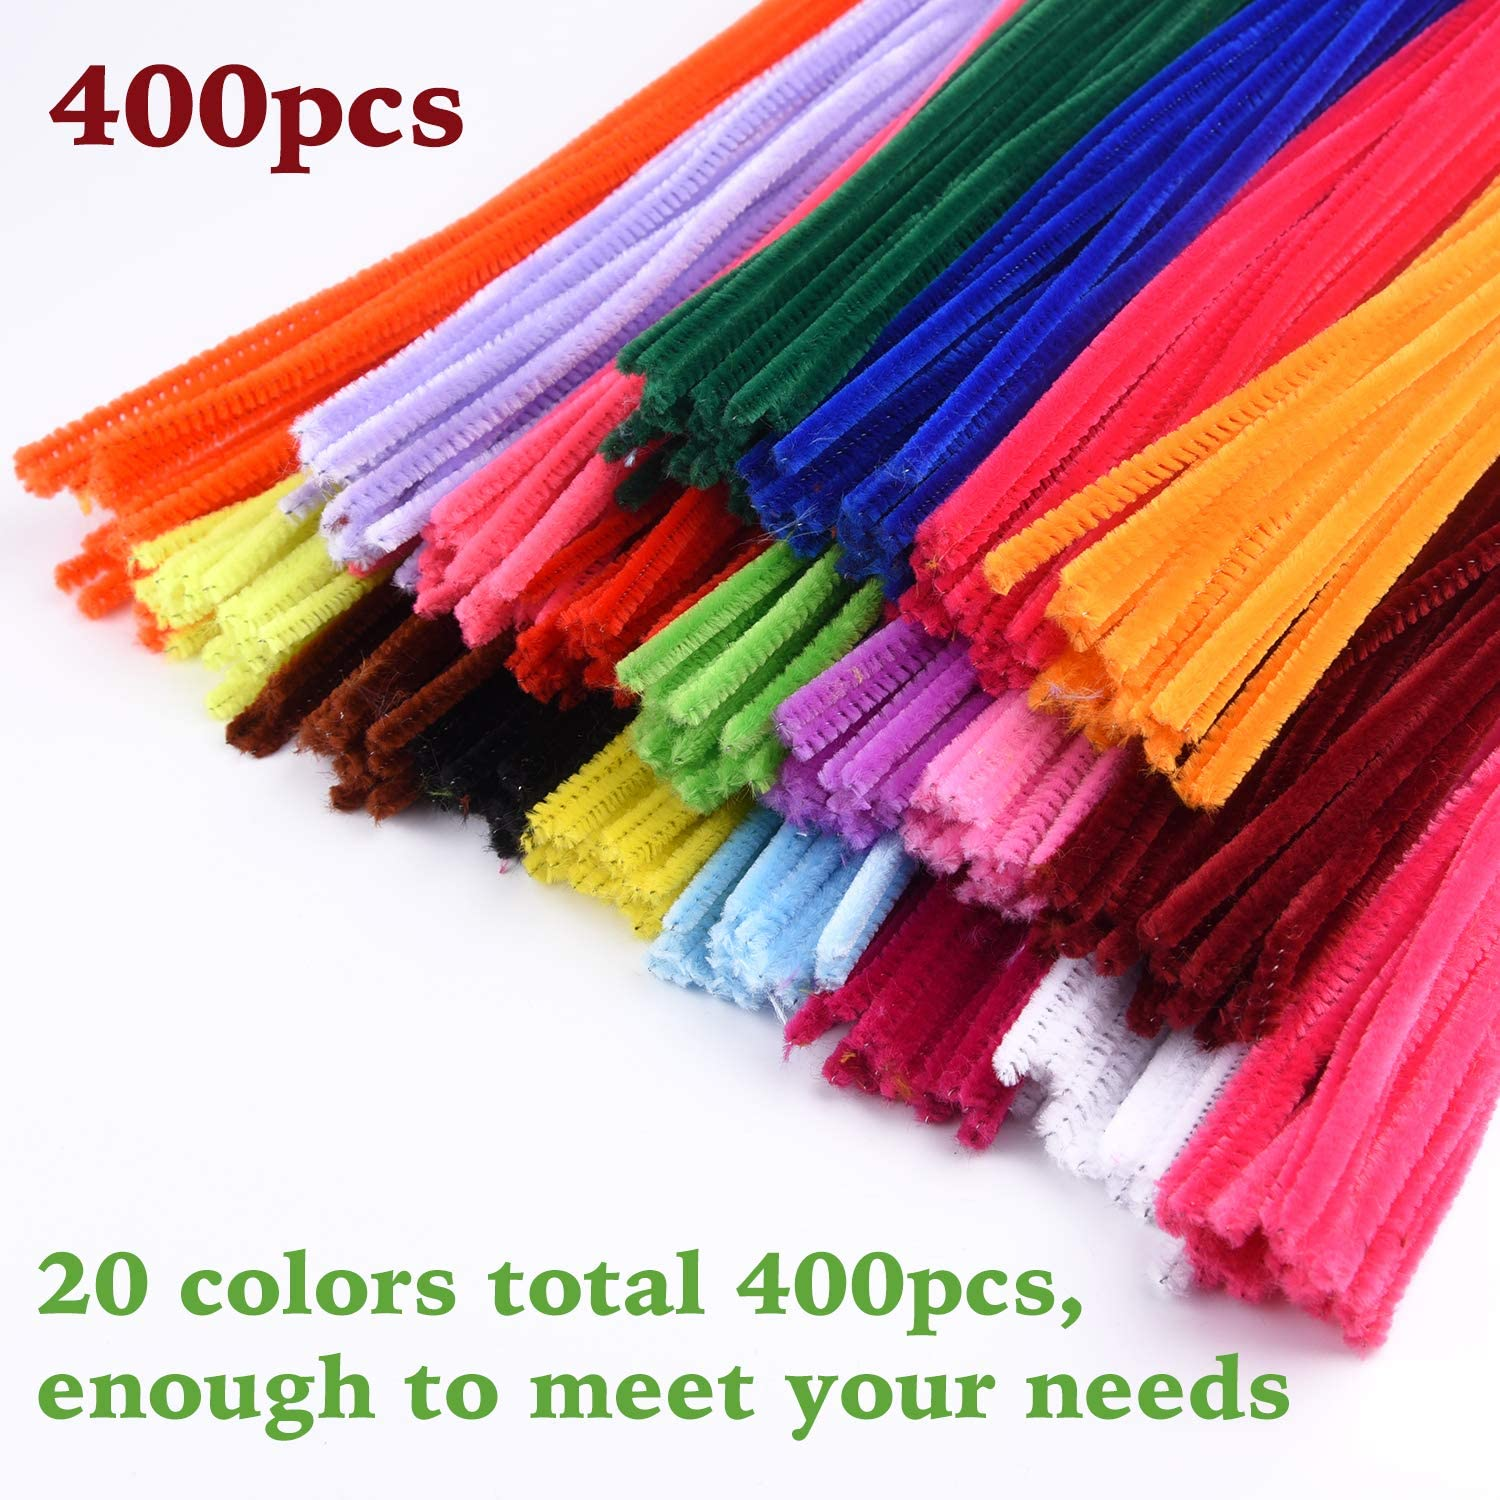 TUPARKA 400 Pcs Pipe Cleaners Chenille Stems DIY Art Craft Projects and Decorations,20 Assorted Colors